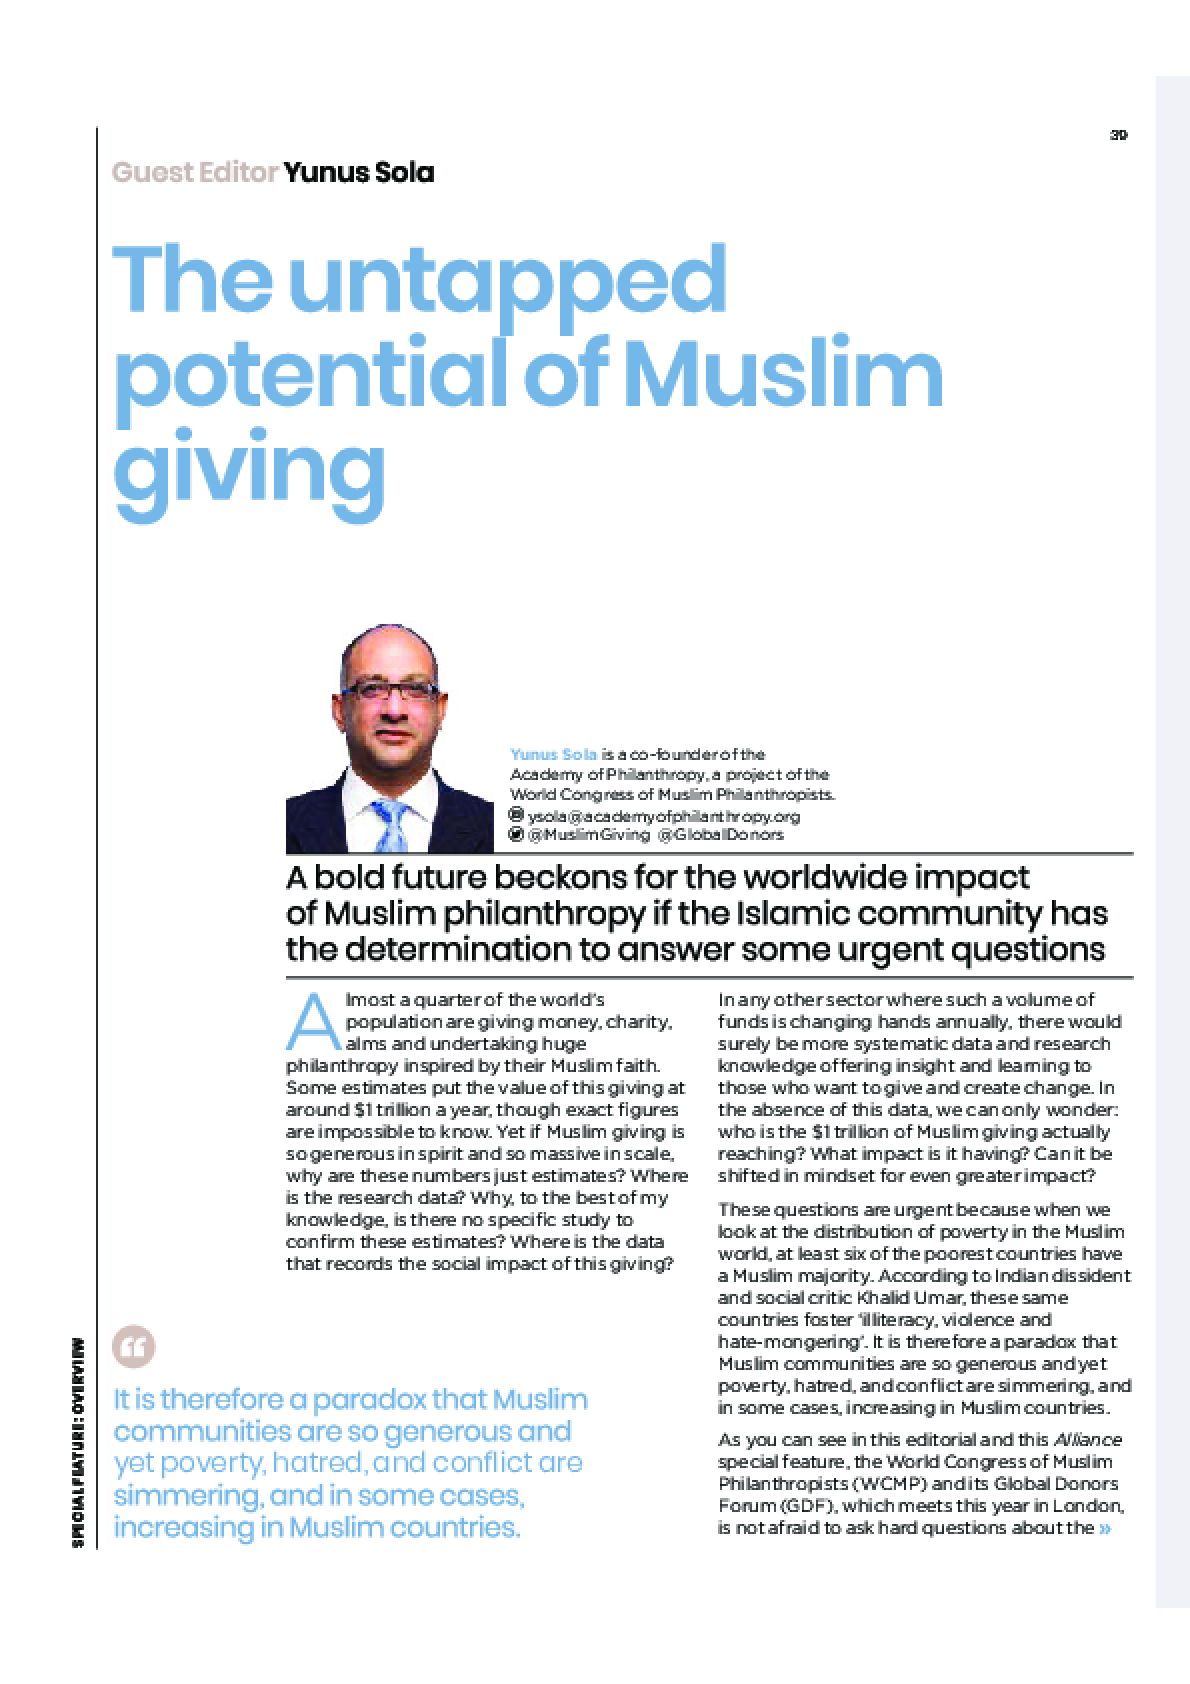 The untapped potential of Muslim giving